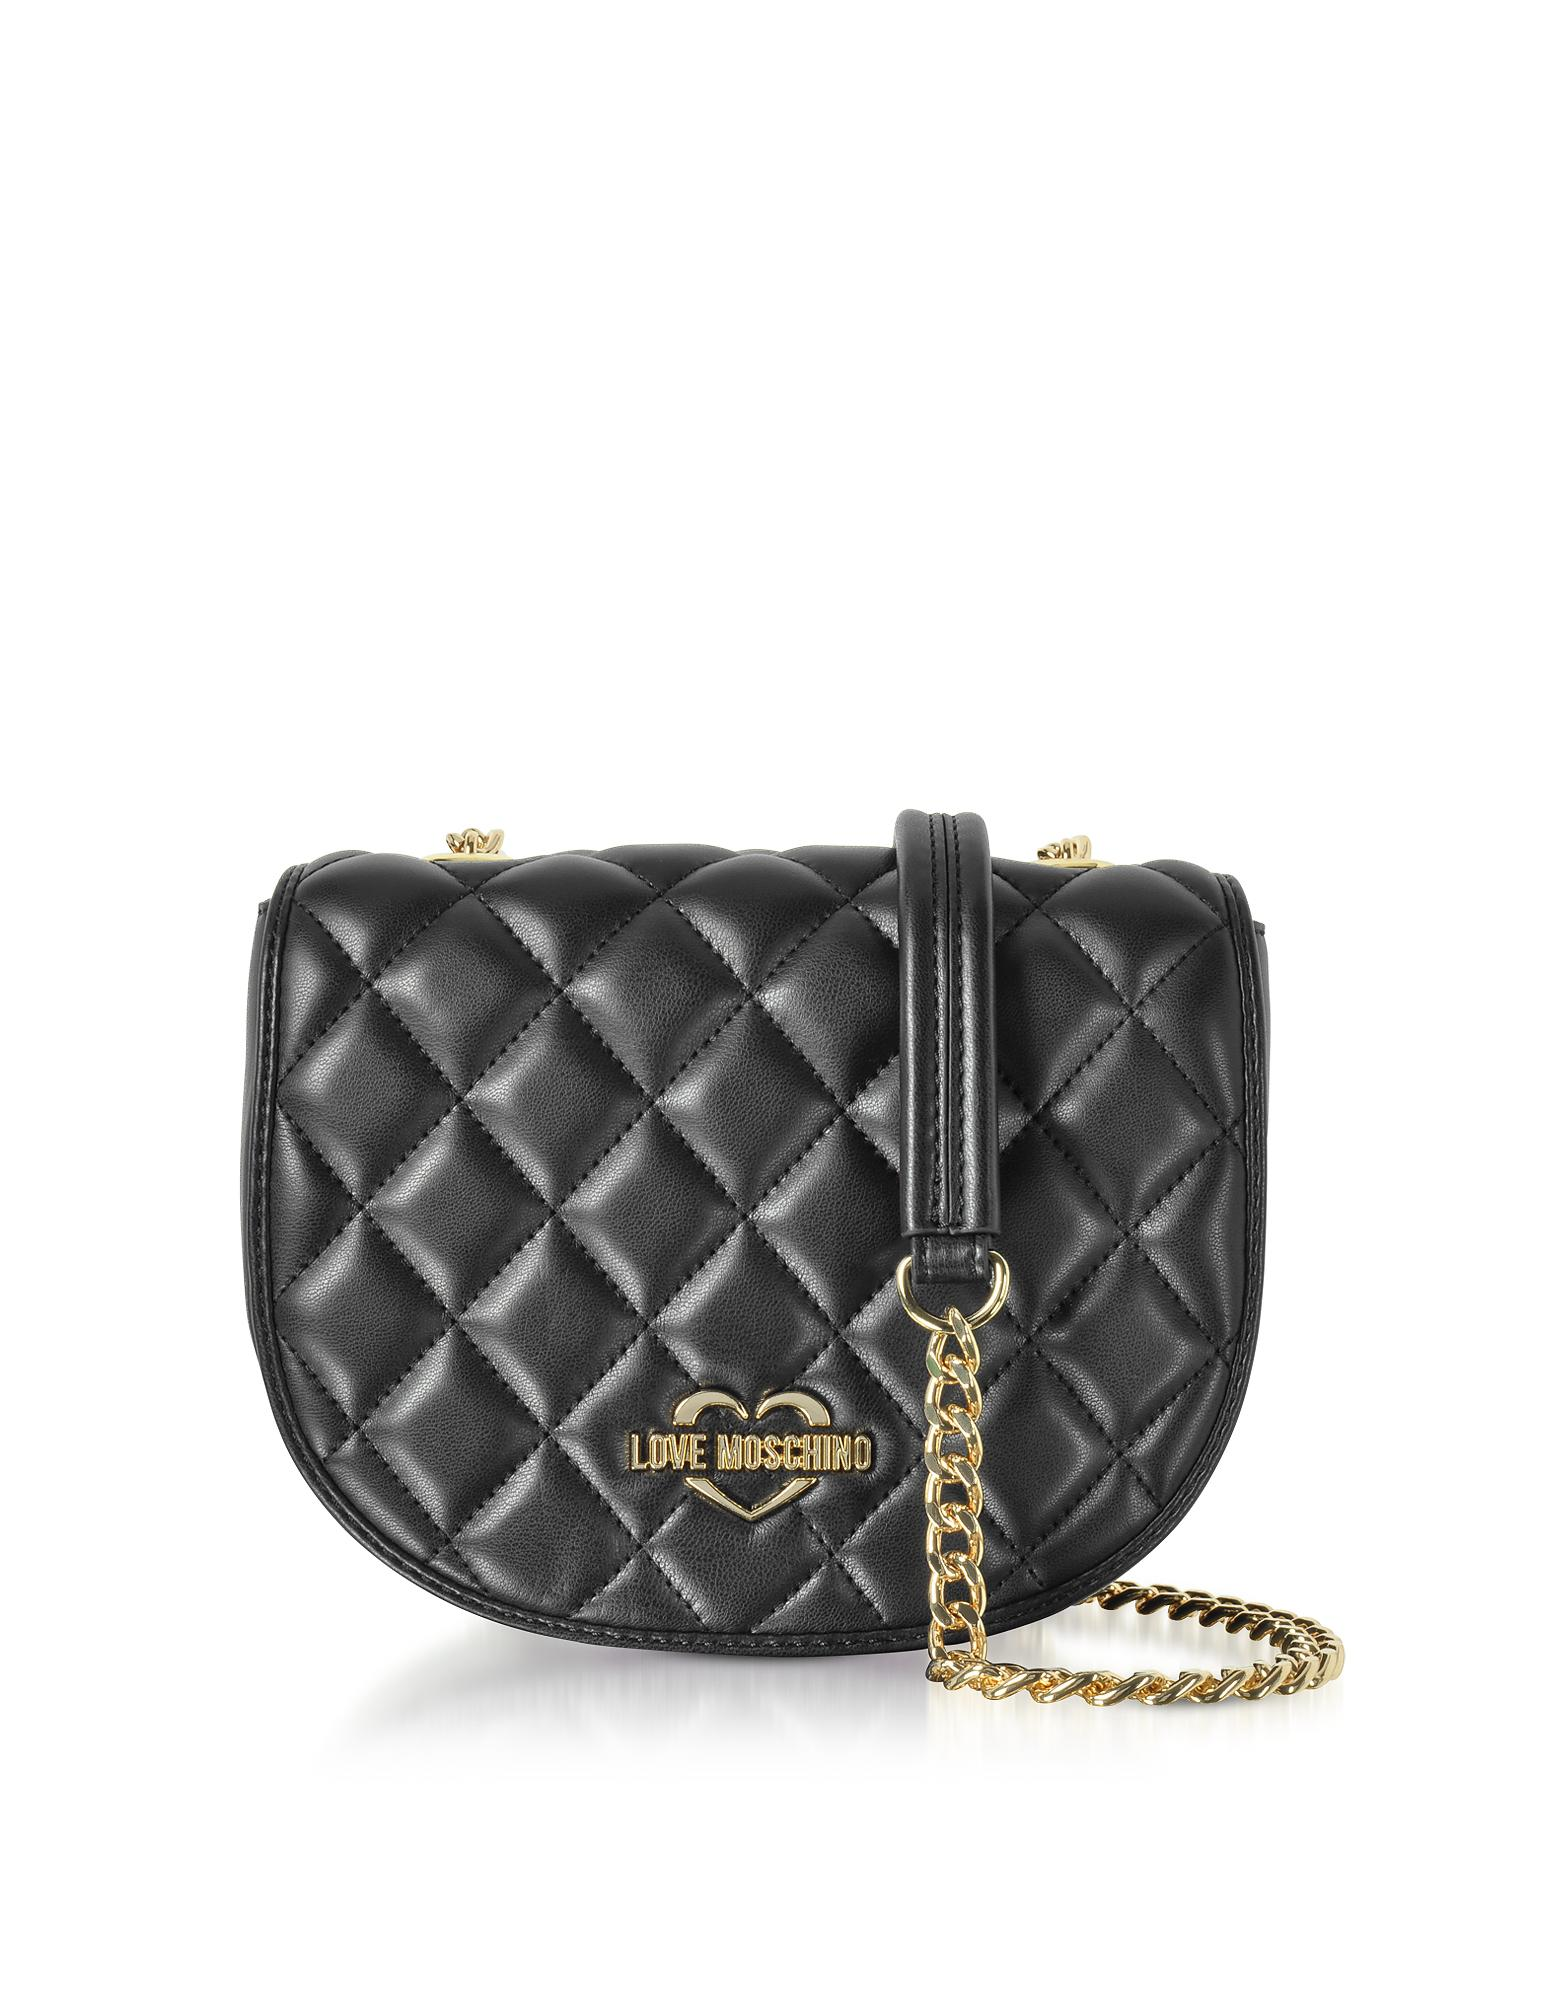 89ff4ec0326 Love Moschino Black Superquilted Eco-leather Small Crossbody Bag in ...